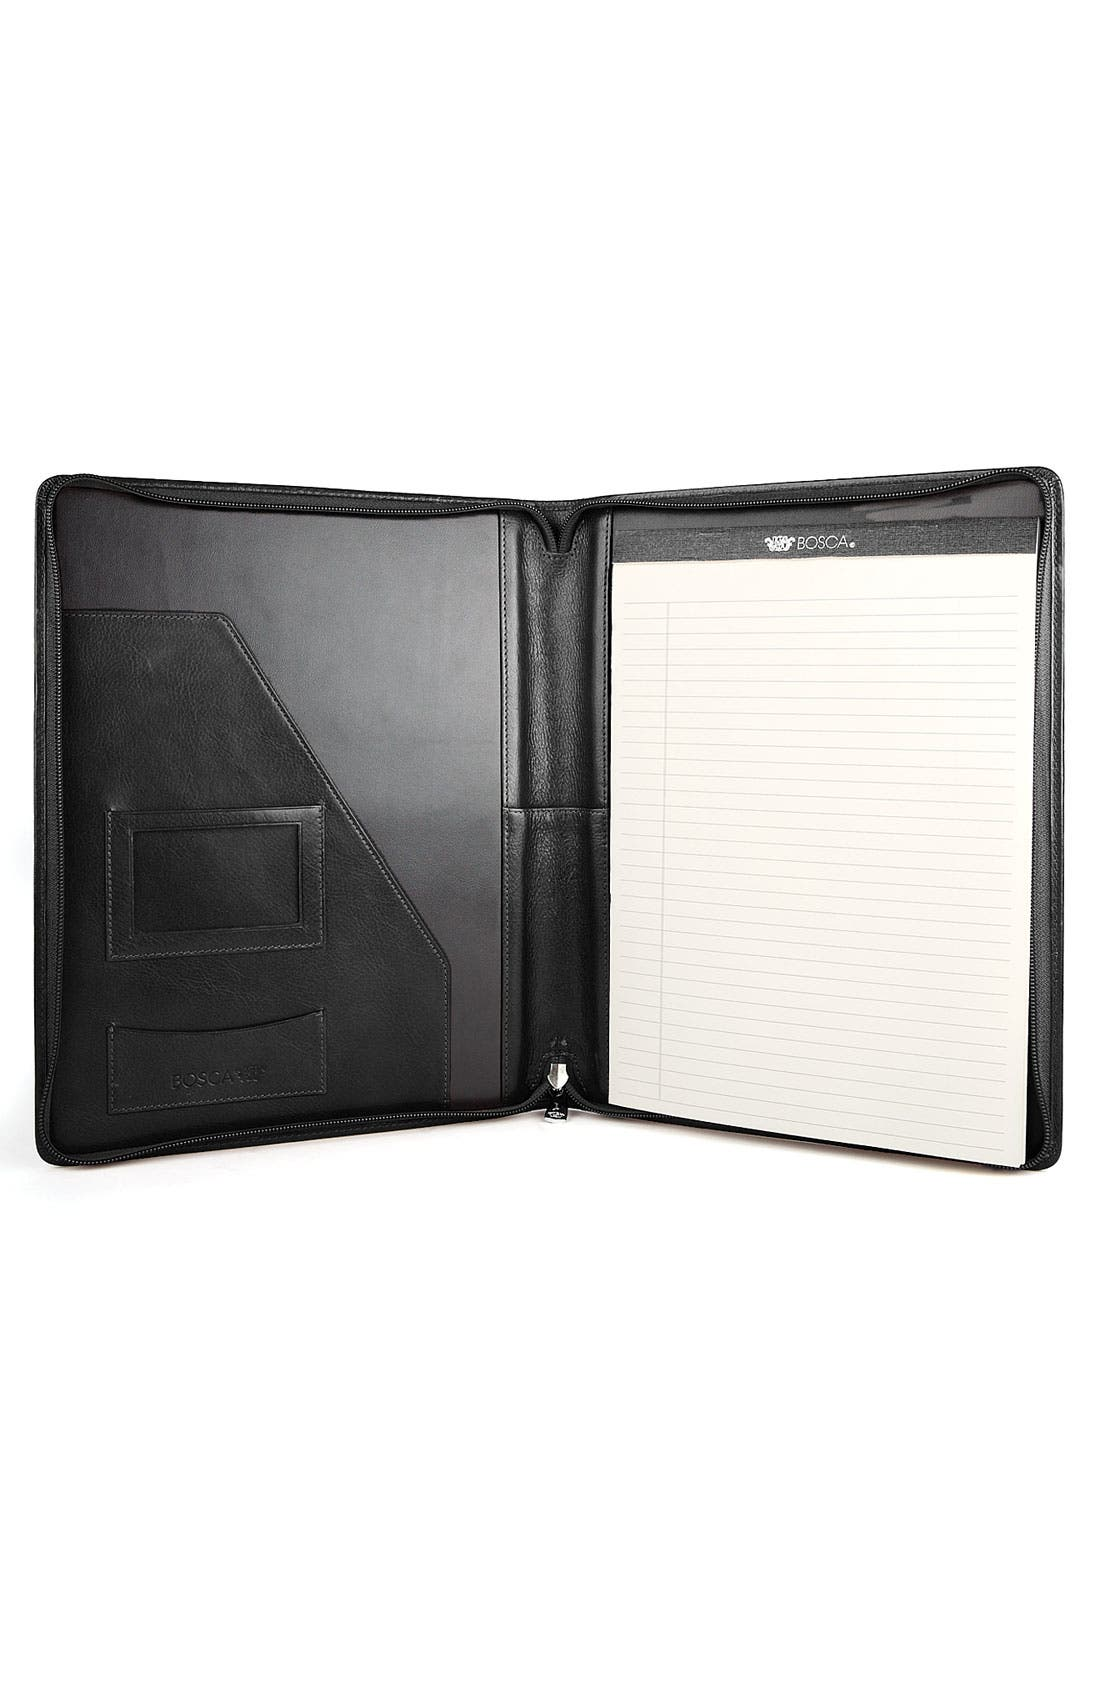 Main Image - Bosca Leather Zip Closure Letter Pad Cover